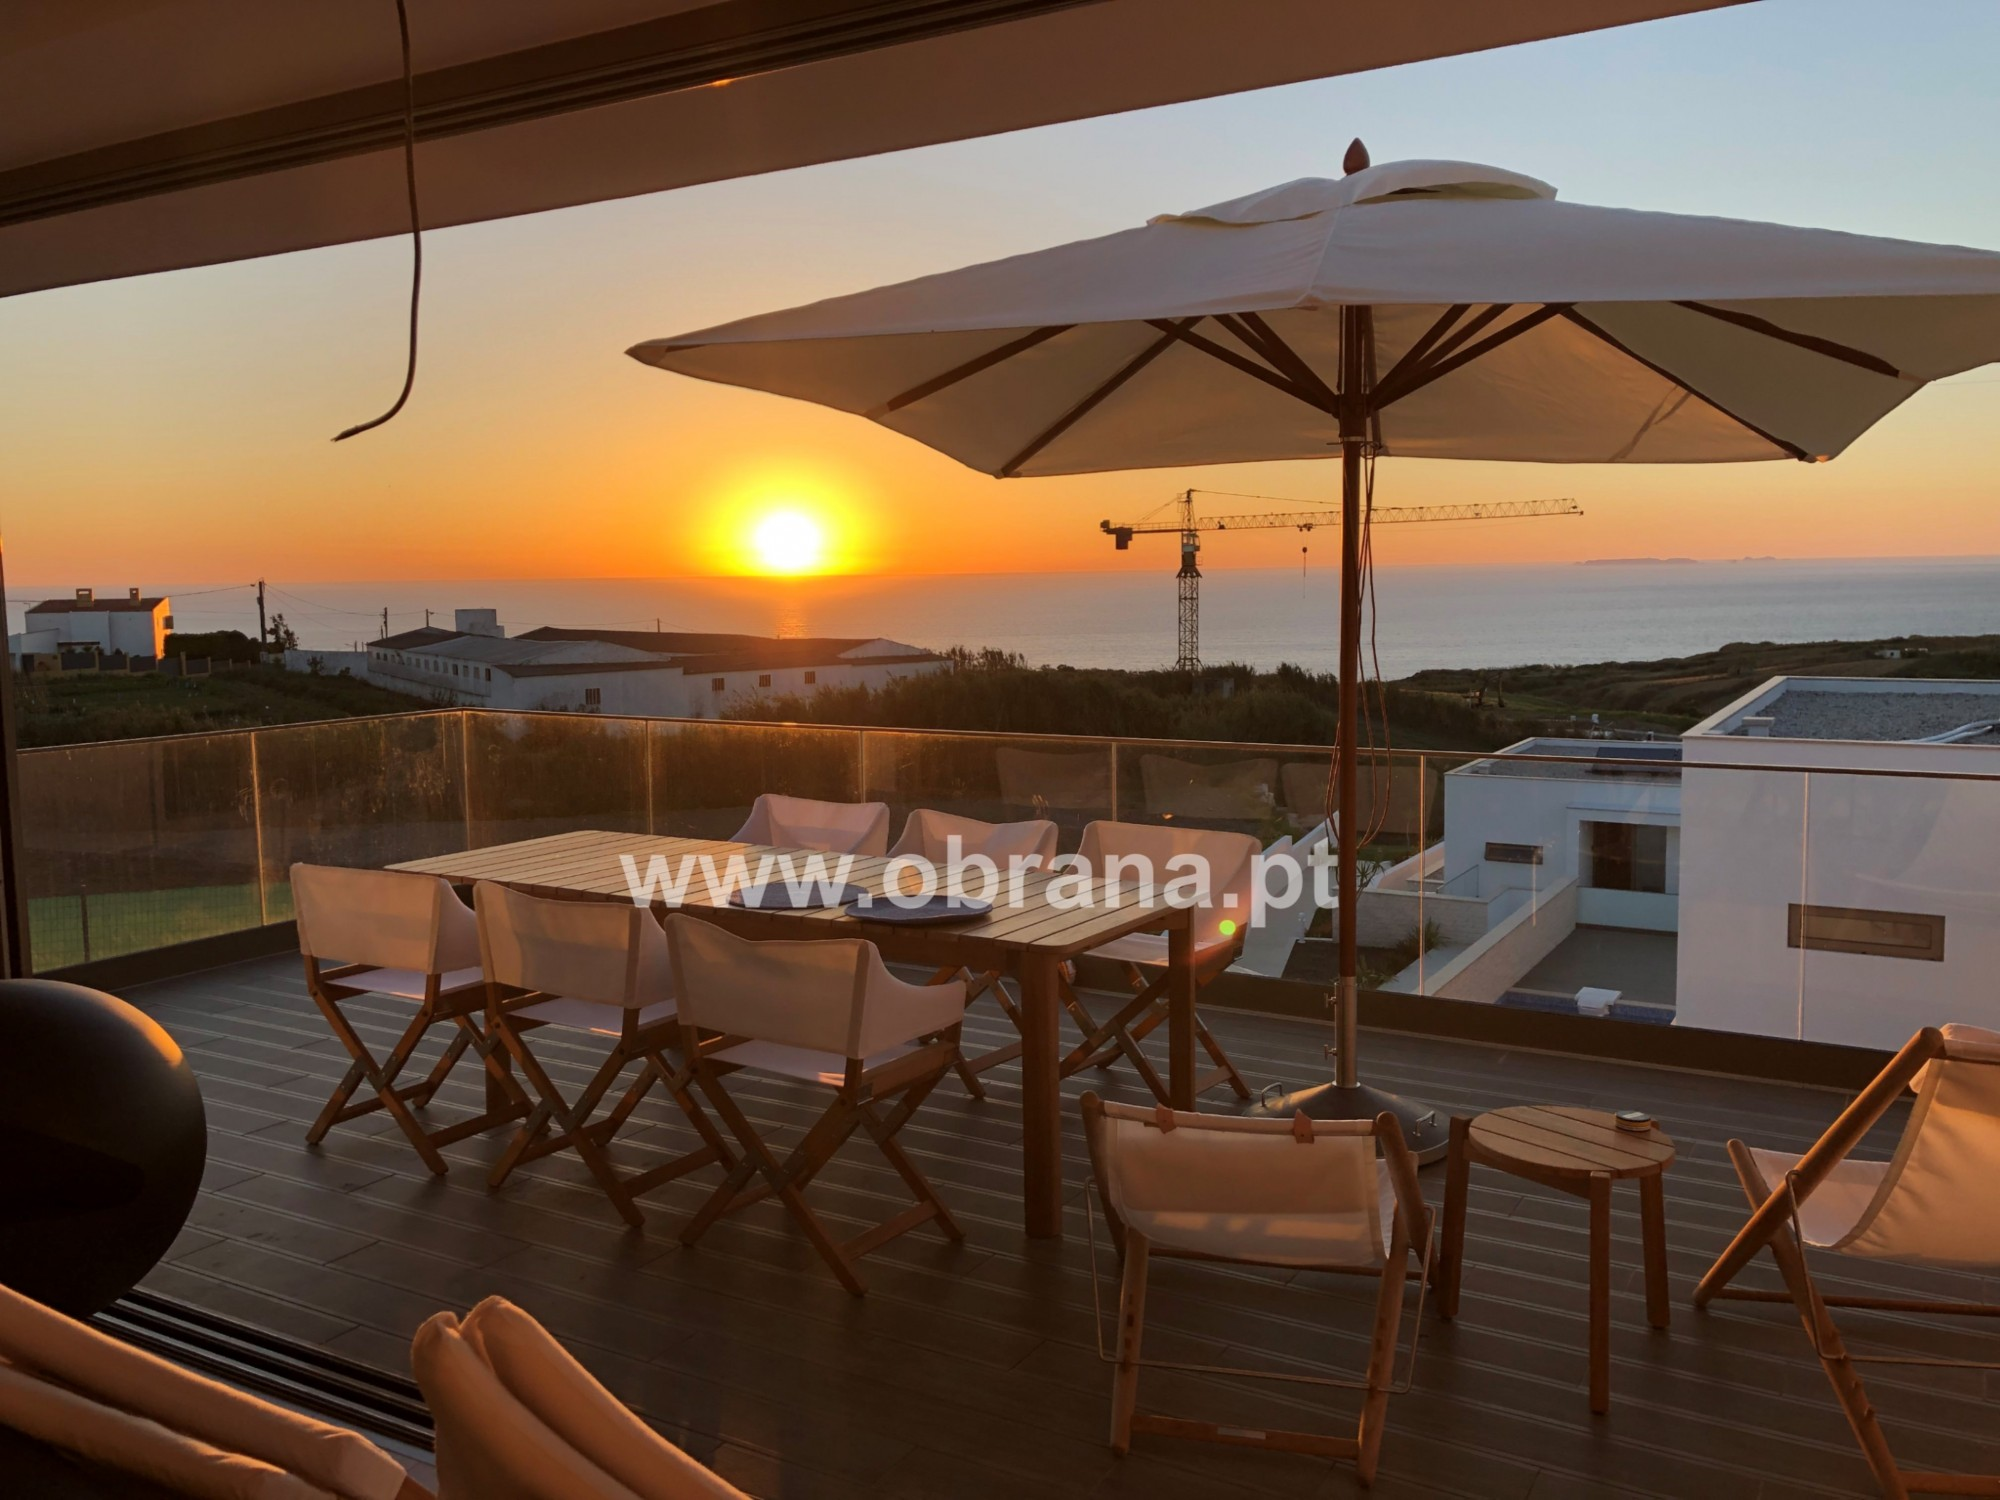 PANORAMIC SEA VIEW VILLA WITH PRIVATE POOL  | 3 BEDROOMS, SLEEPS 6 | AIR CONDITIONING | WIFI | BEACH | SURF